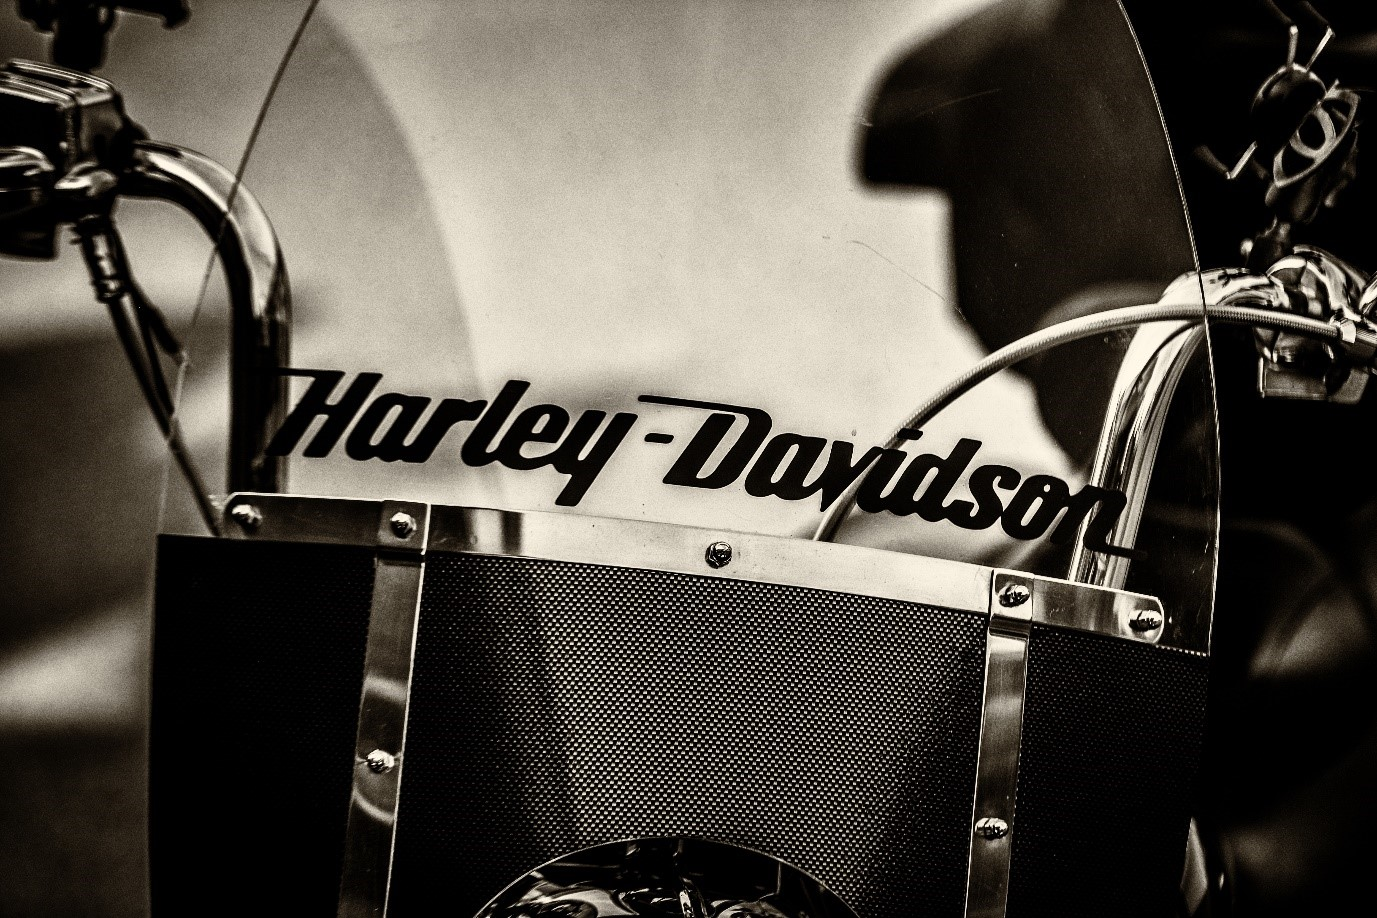 It took a global pandemic for all Harley Davidson OEM motorcycle parts dealers to go online